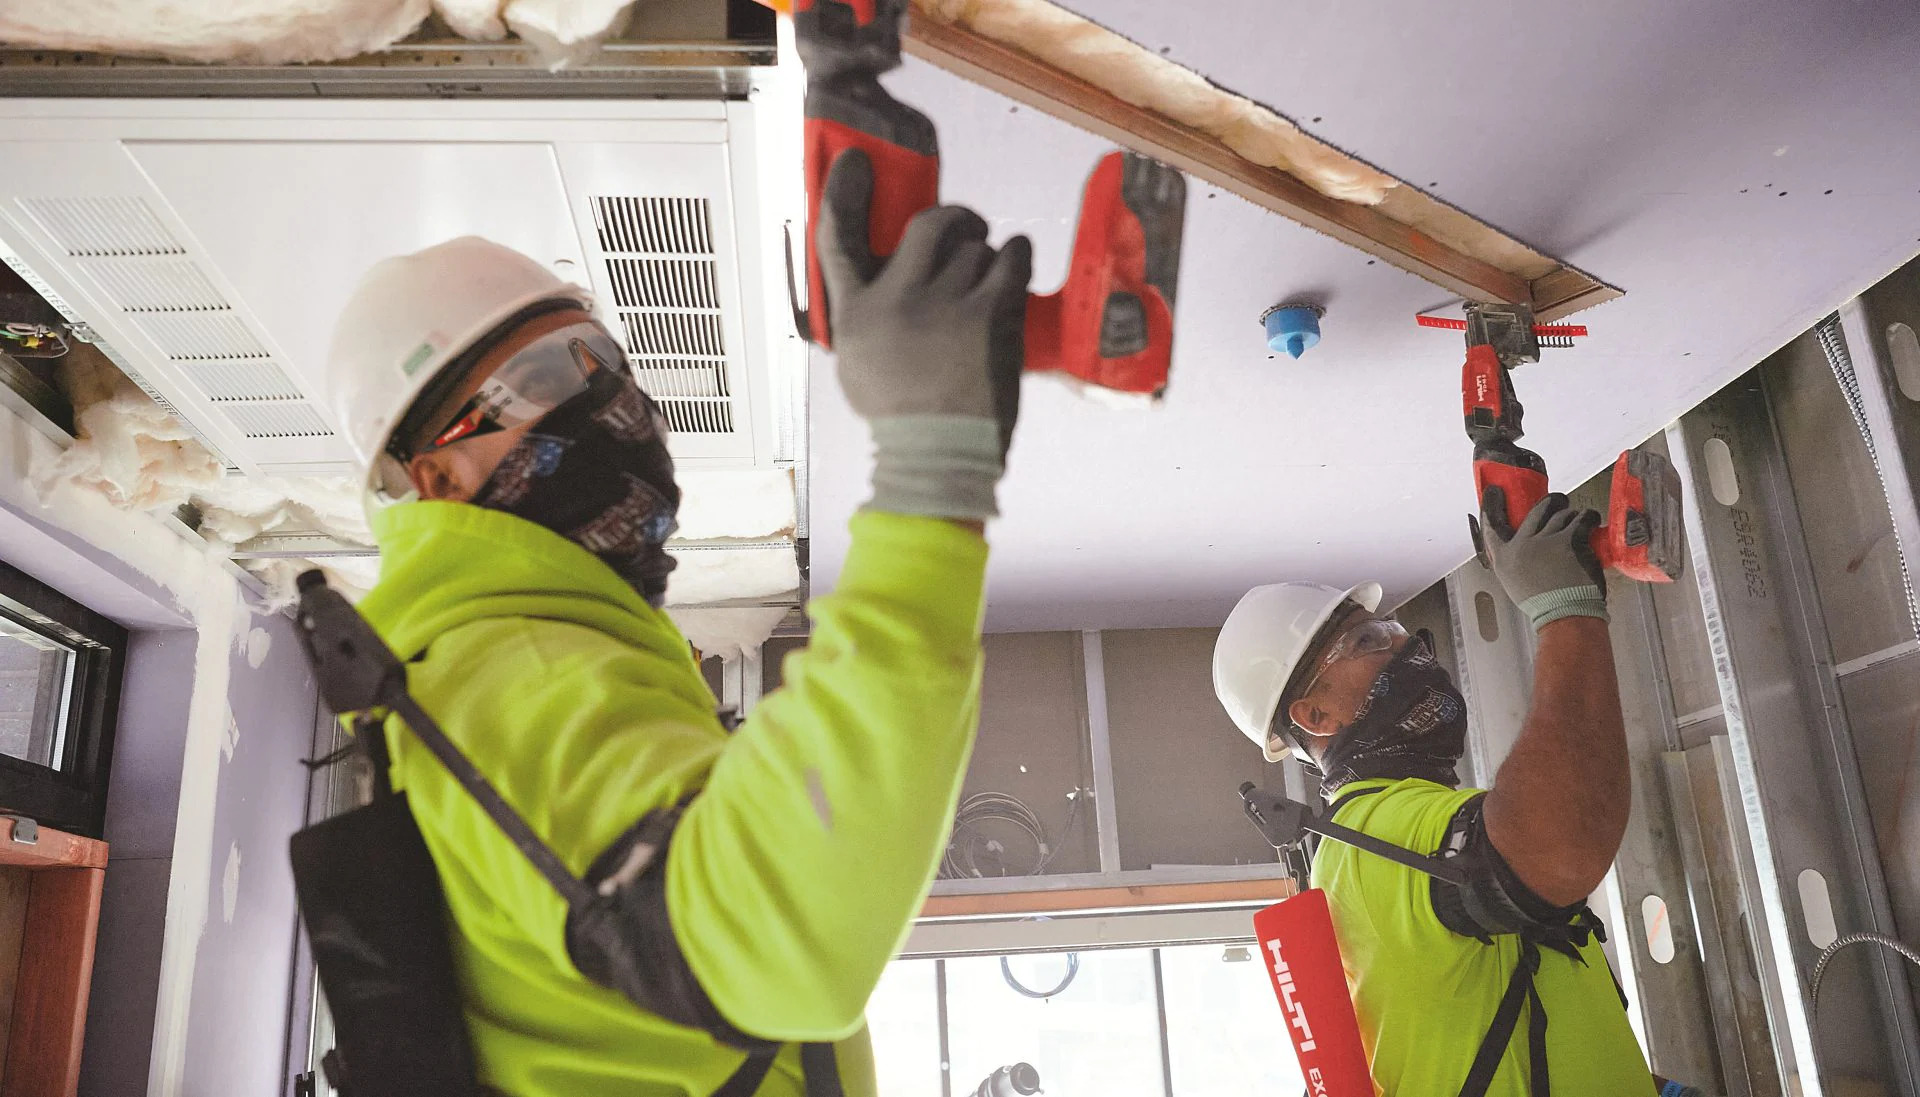 construction workers use EXO-O1 OVERHEAD EXOSKELETON to mount in the ceiling